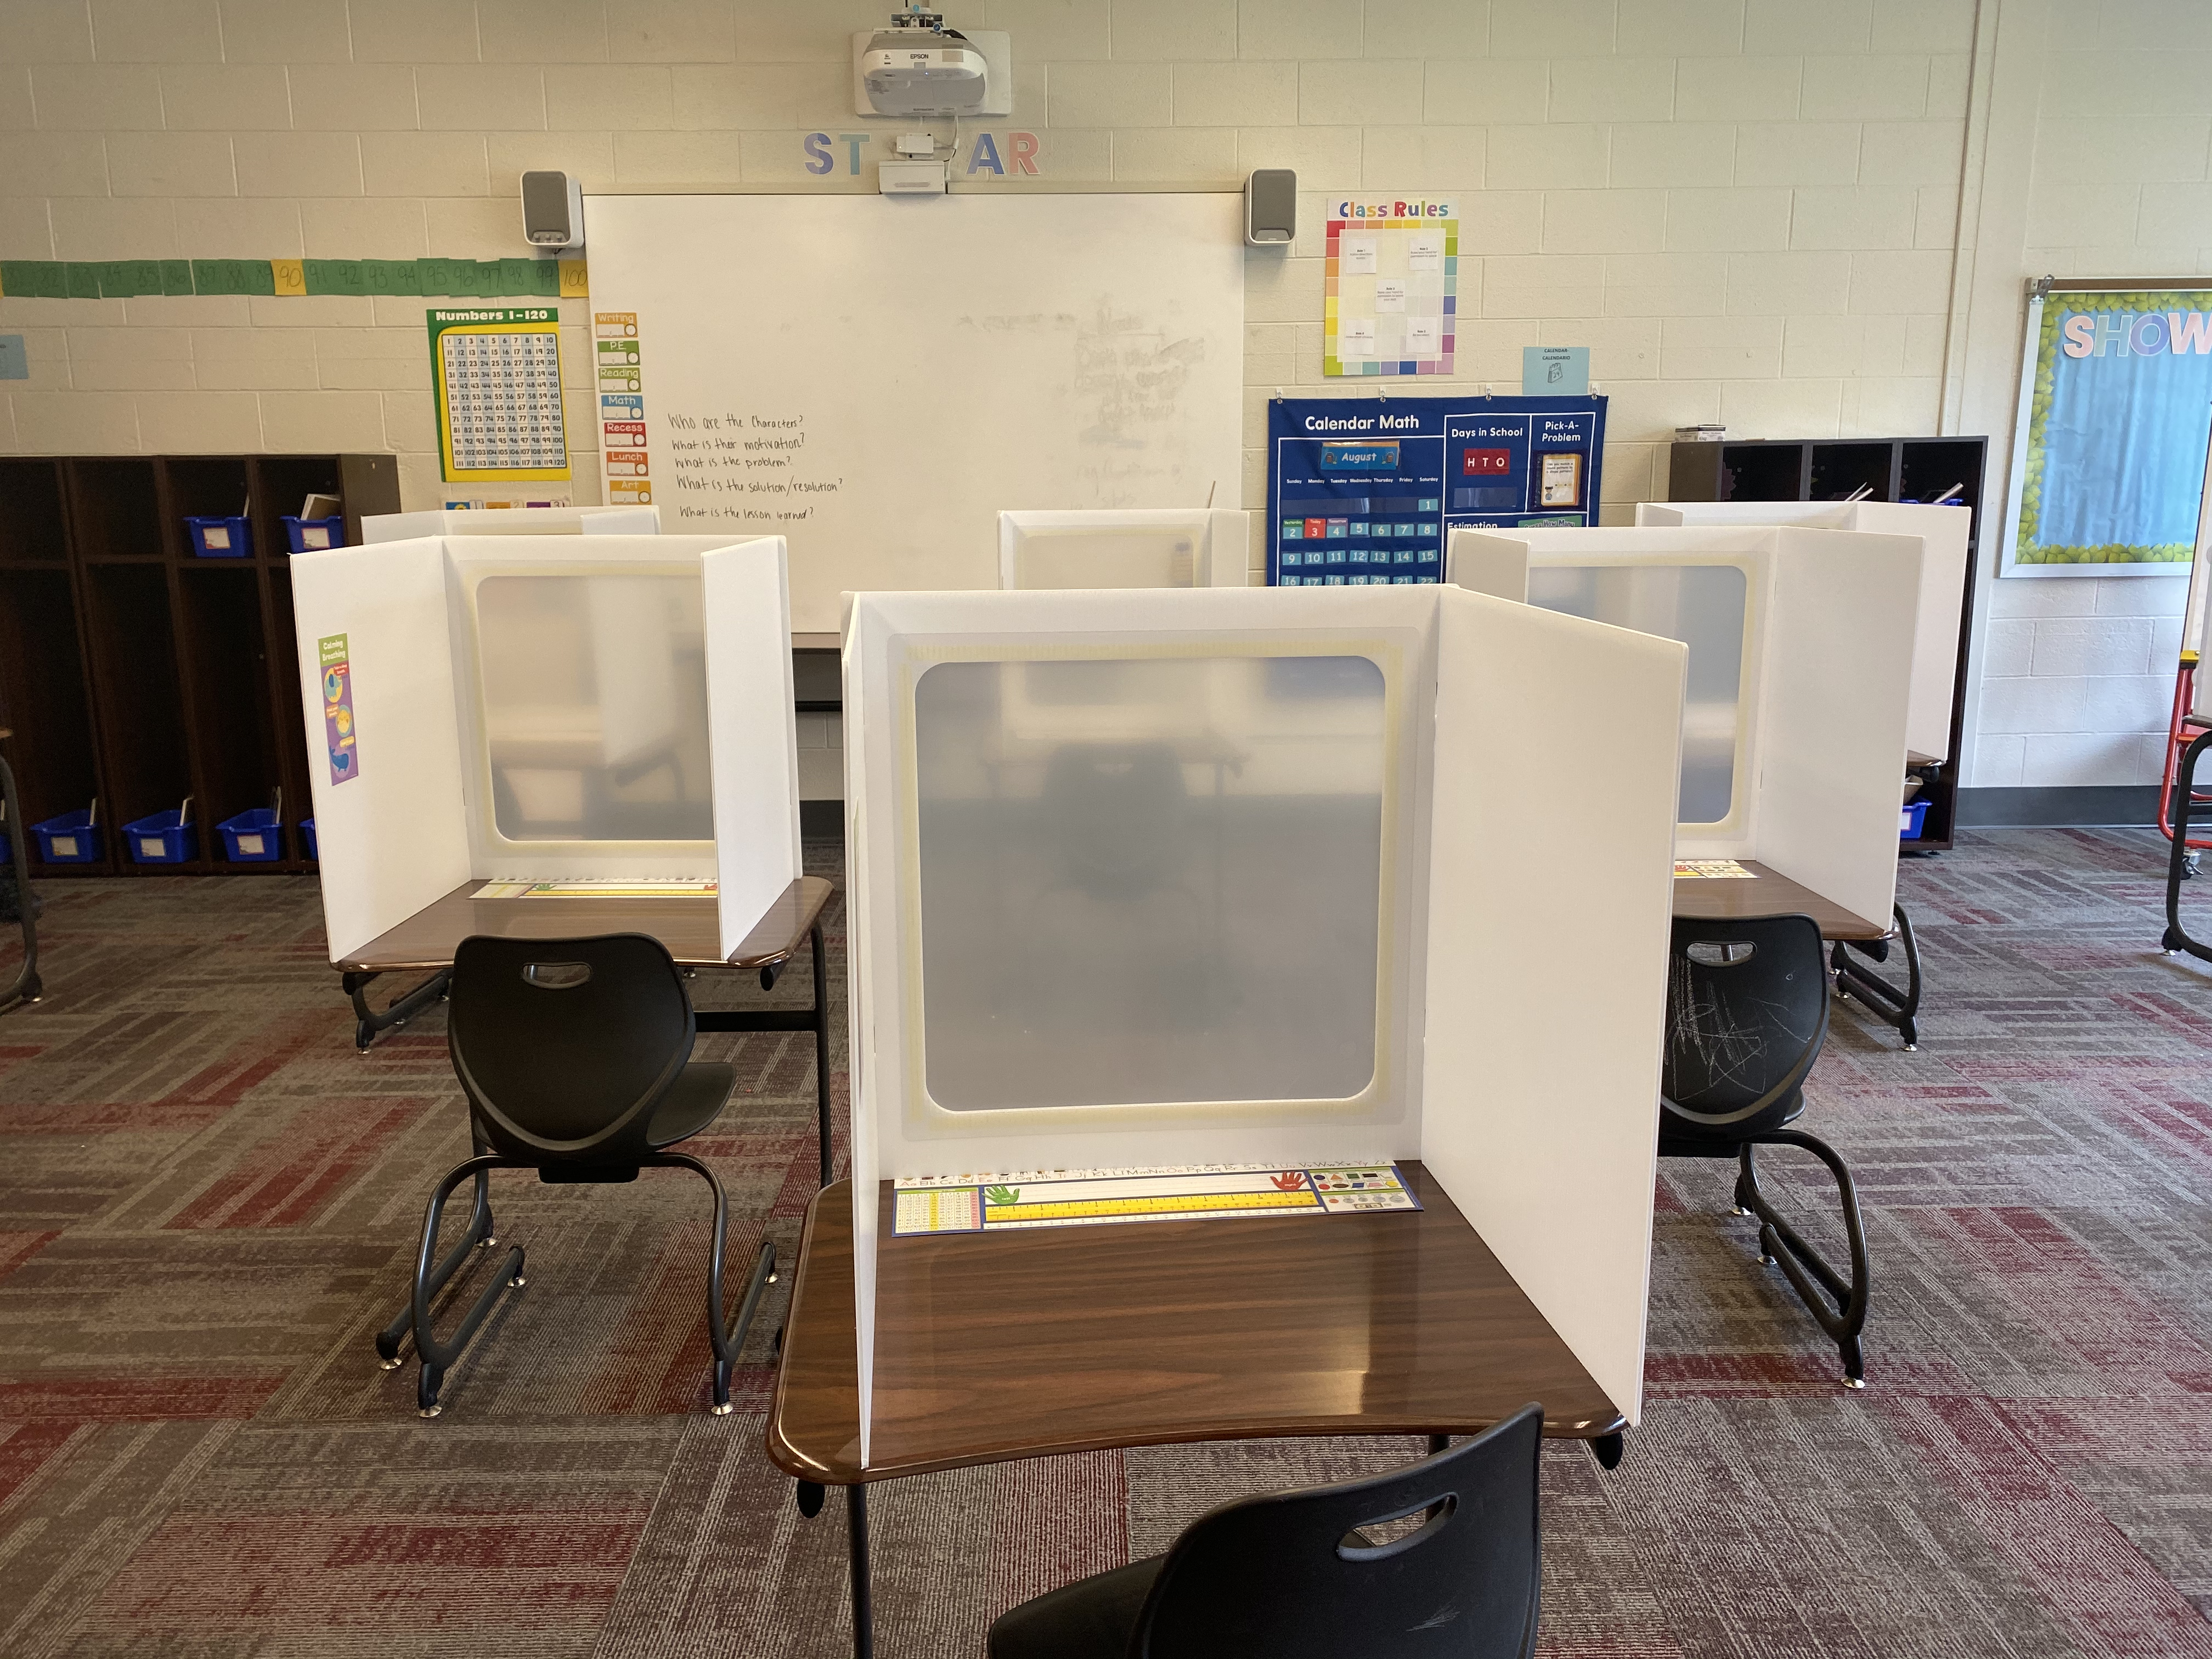 In a first-grade classroom at Tindley Summit Academy in Indianapolis, empty desks sit spaced out in rows with plastic shield dividers so students can take off their masks while working.